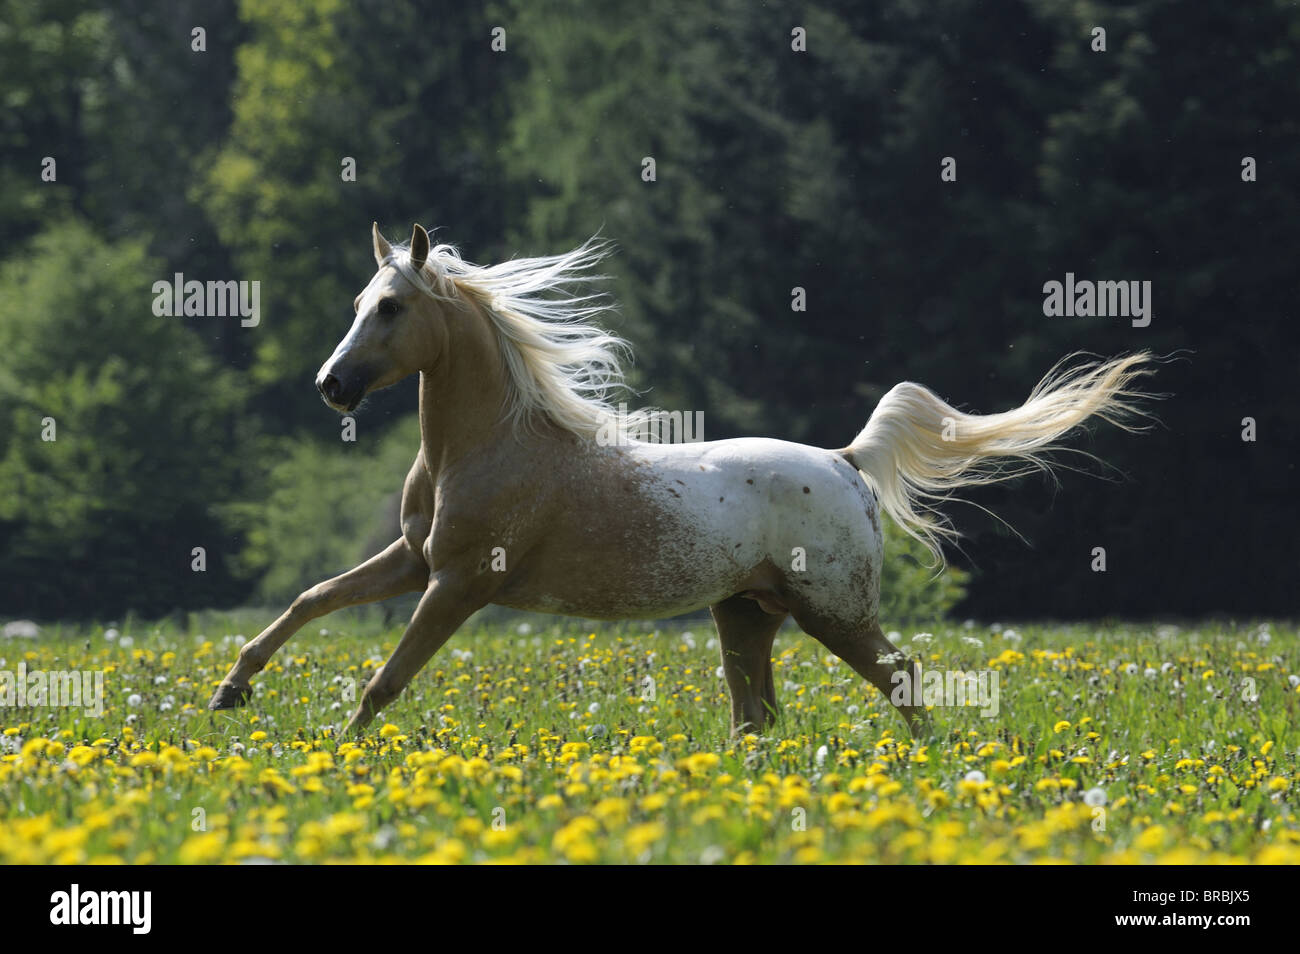 Partbred (Equus ferus caballus). Stallion in a gallop on a meadow. - Stock Image